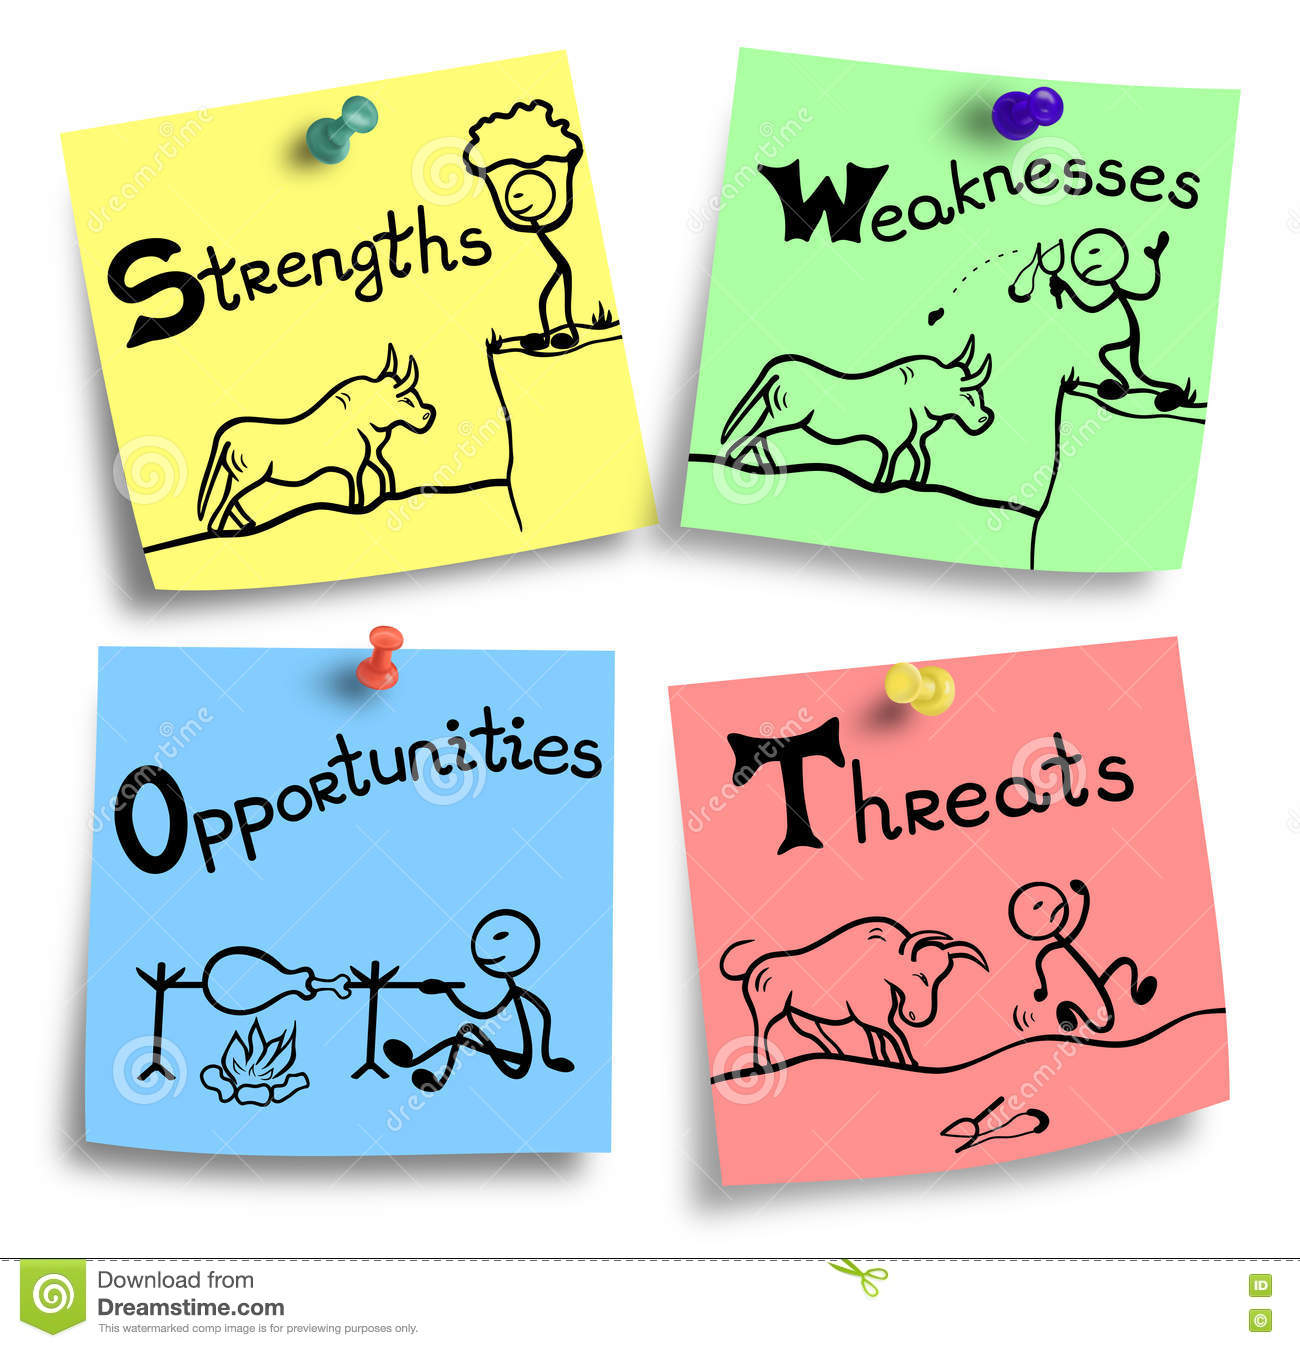 strength weakness opportunities threats stock images image  swot concept strengths weaknesses opportunities threats stock photos